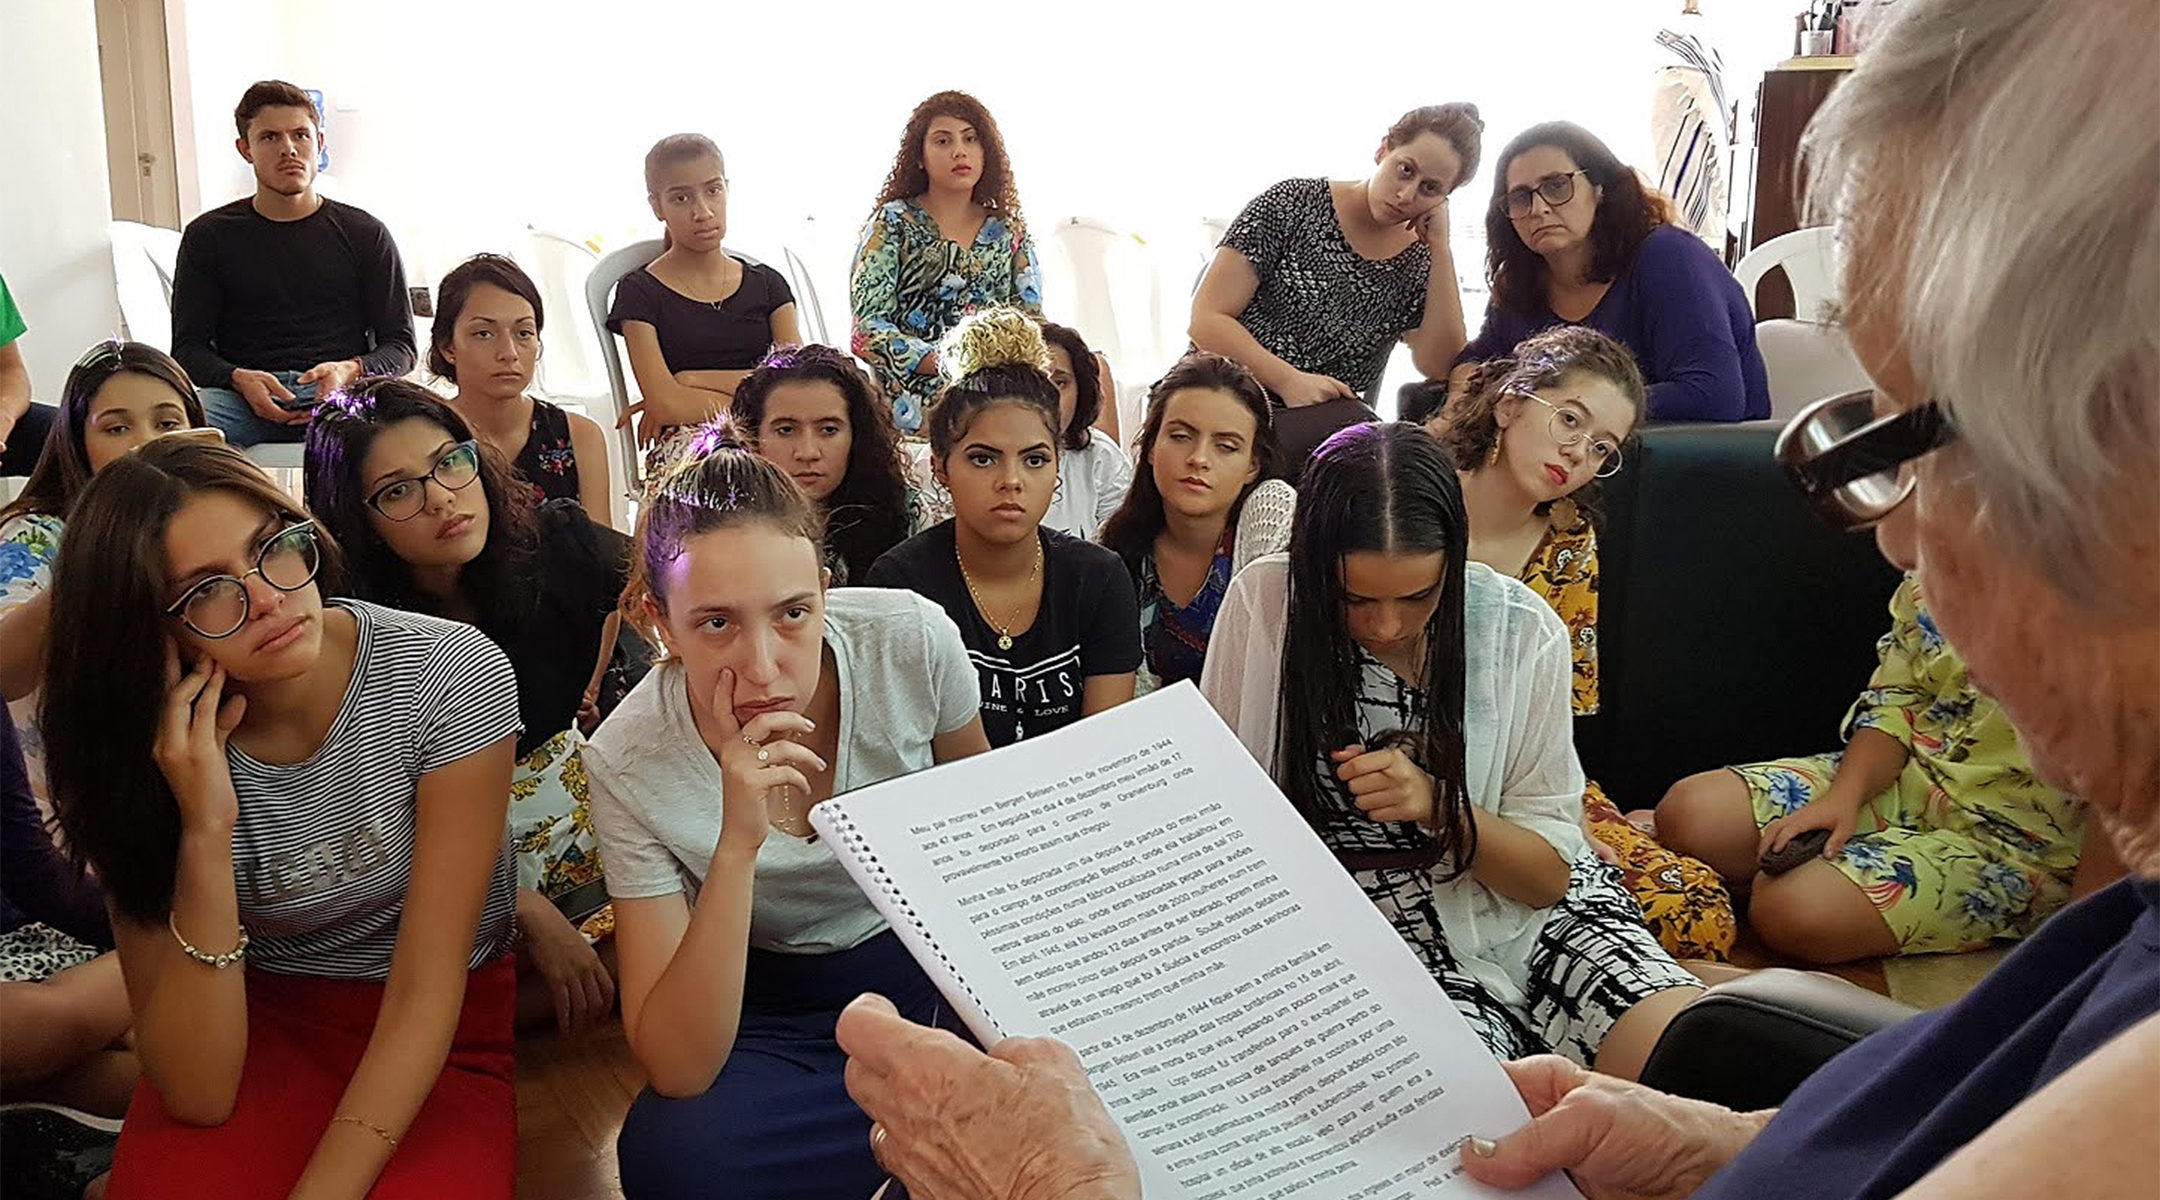 Holocaust survivor Nanette Koning talking to bnei anusim at Yeshiva Camp in Sao Paulo in 2018. (Courtesy of Yeshiva Camp)